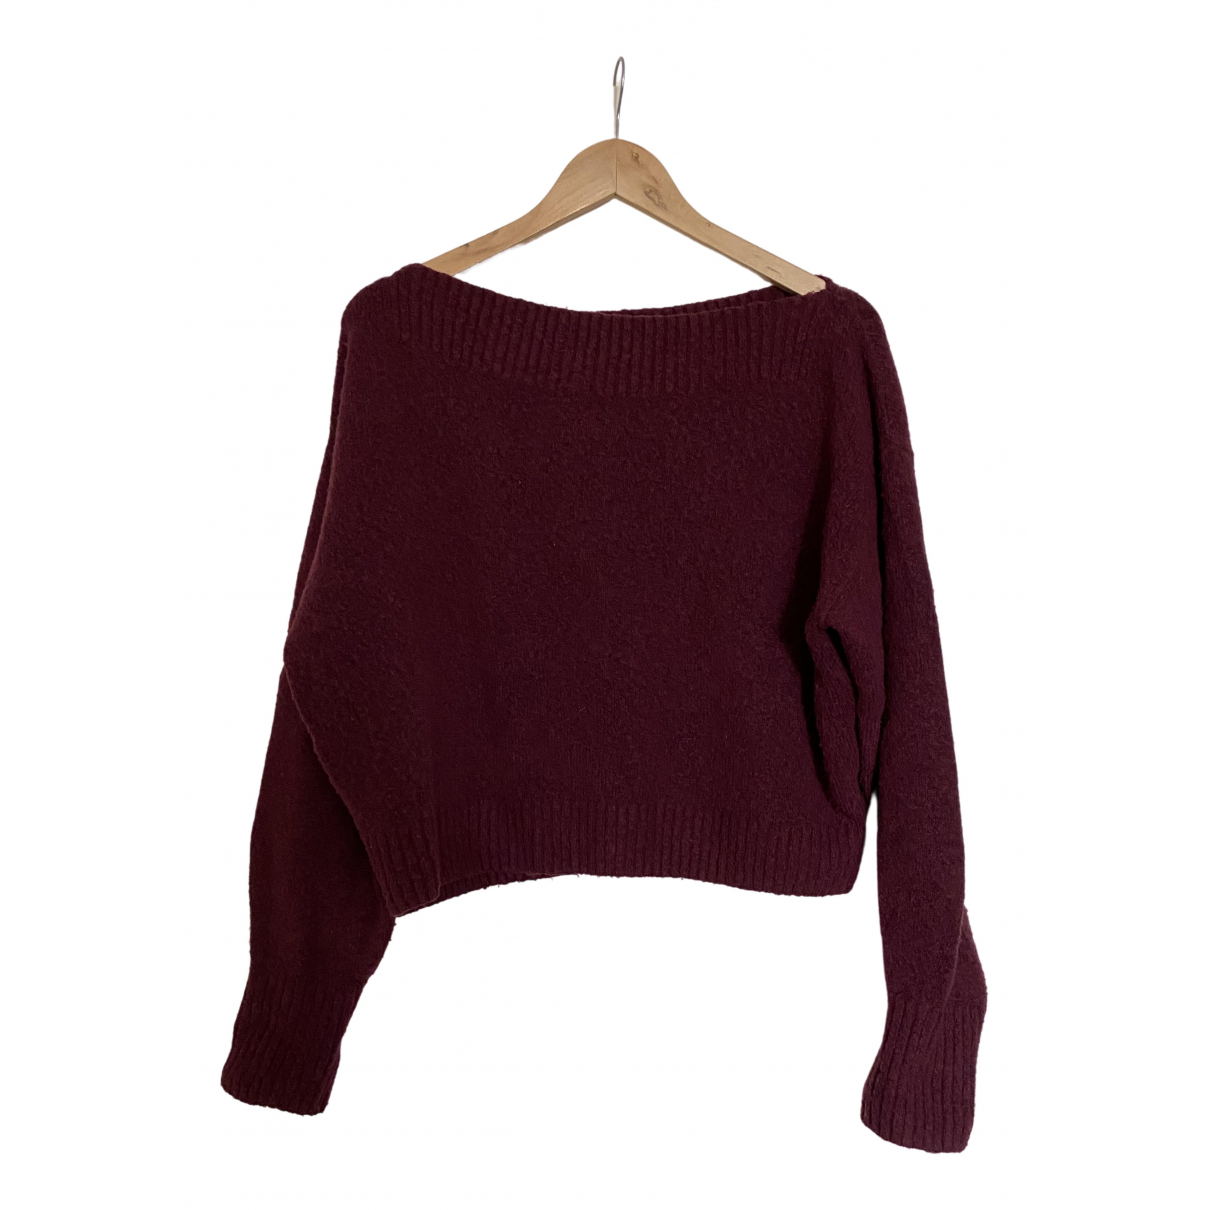 & Other Stories \N Pullover in  Bordeauxrot Synthetik